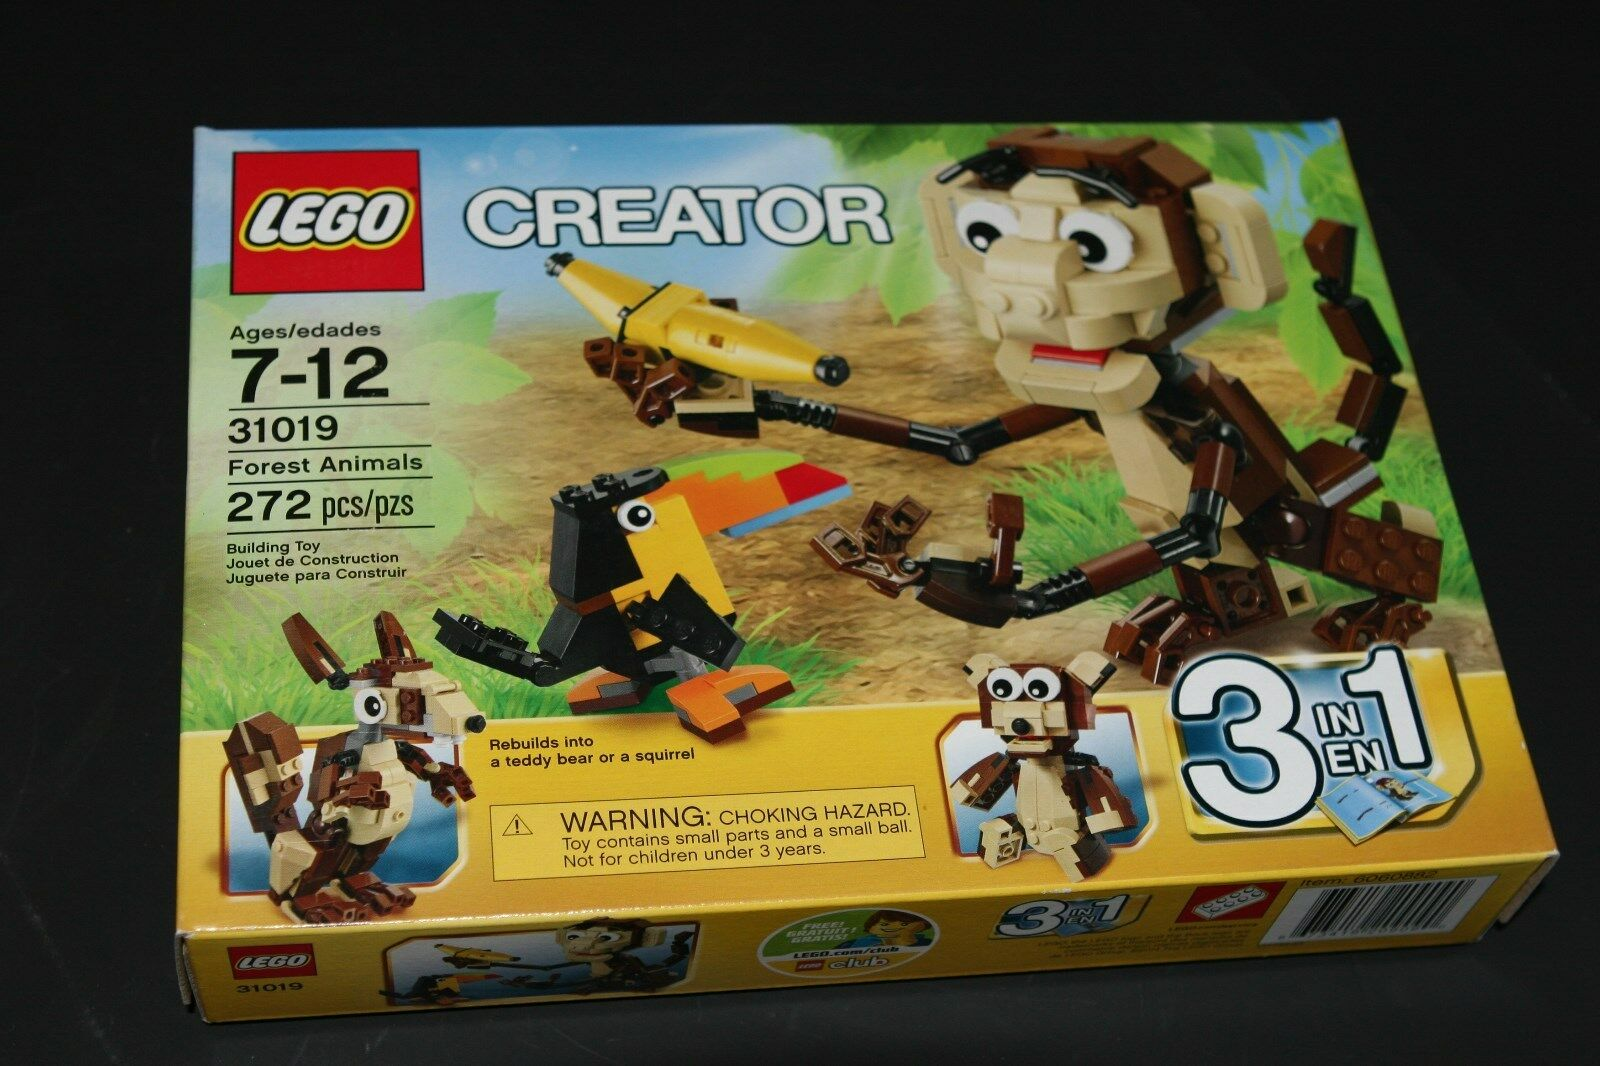 LEGO 31019 Creator Monkey & Bird Unused Set